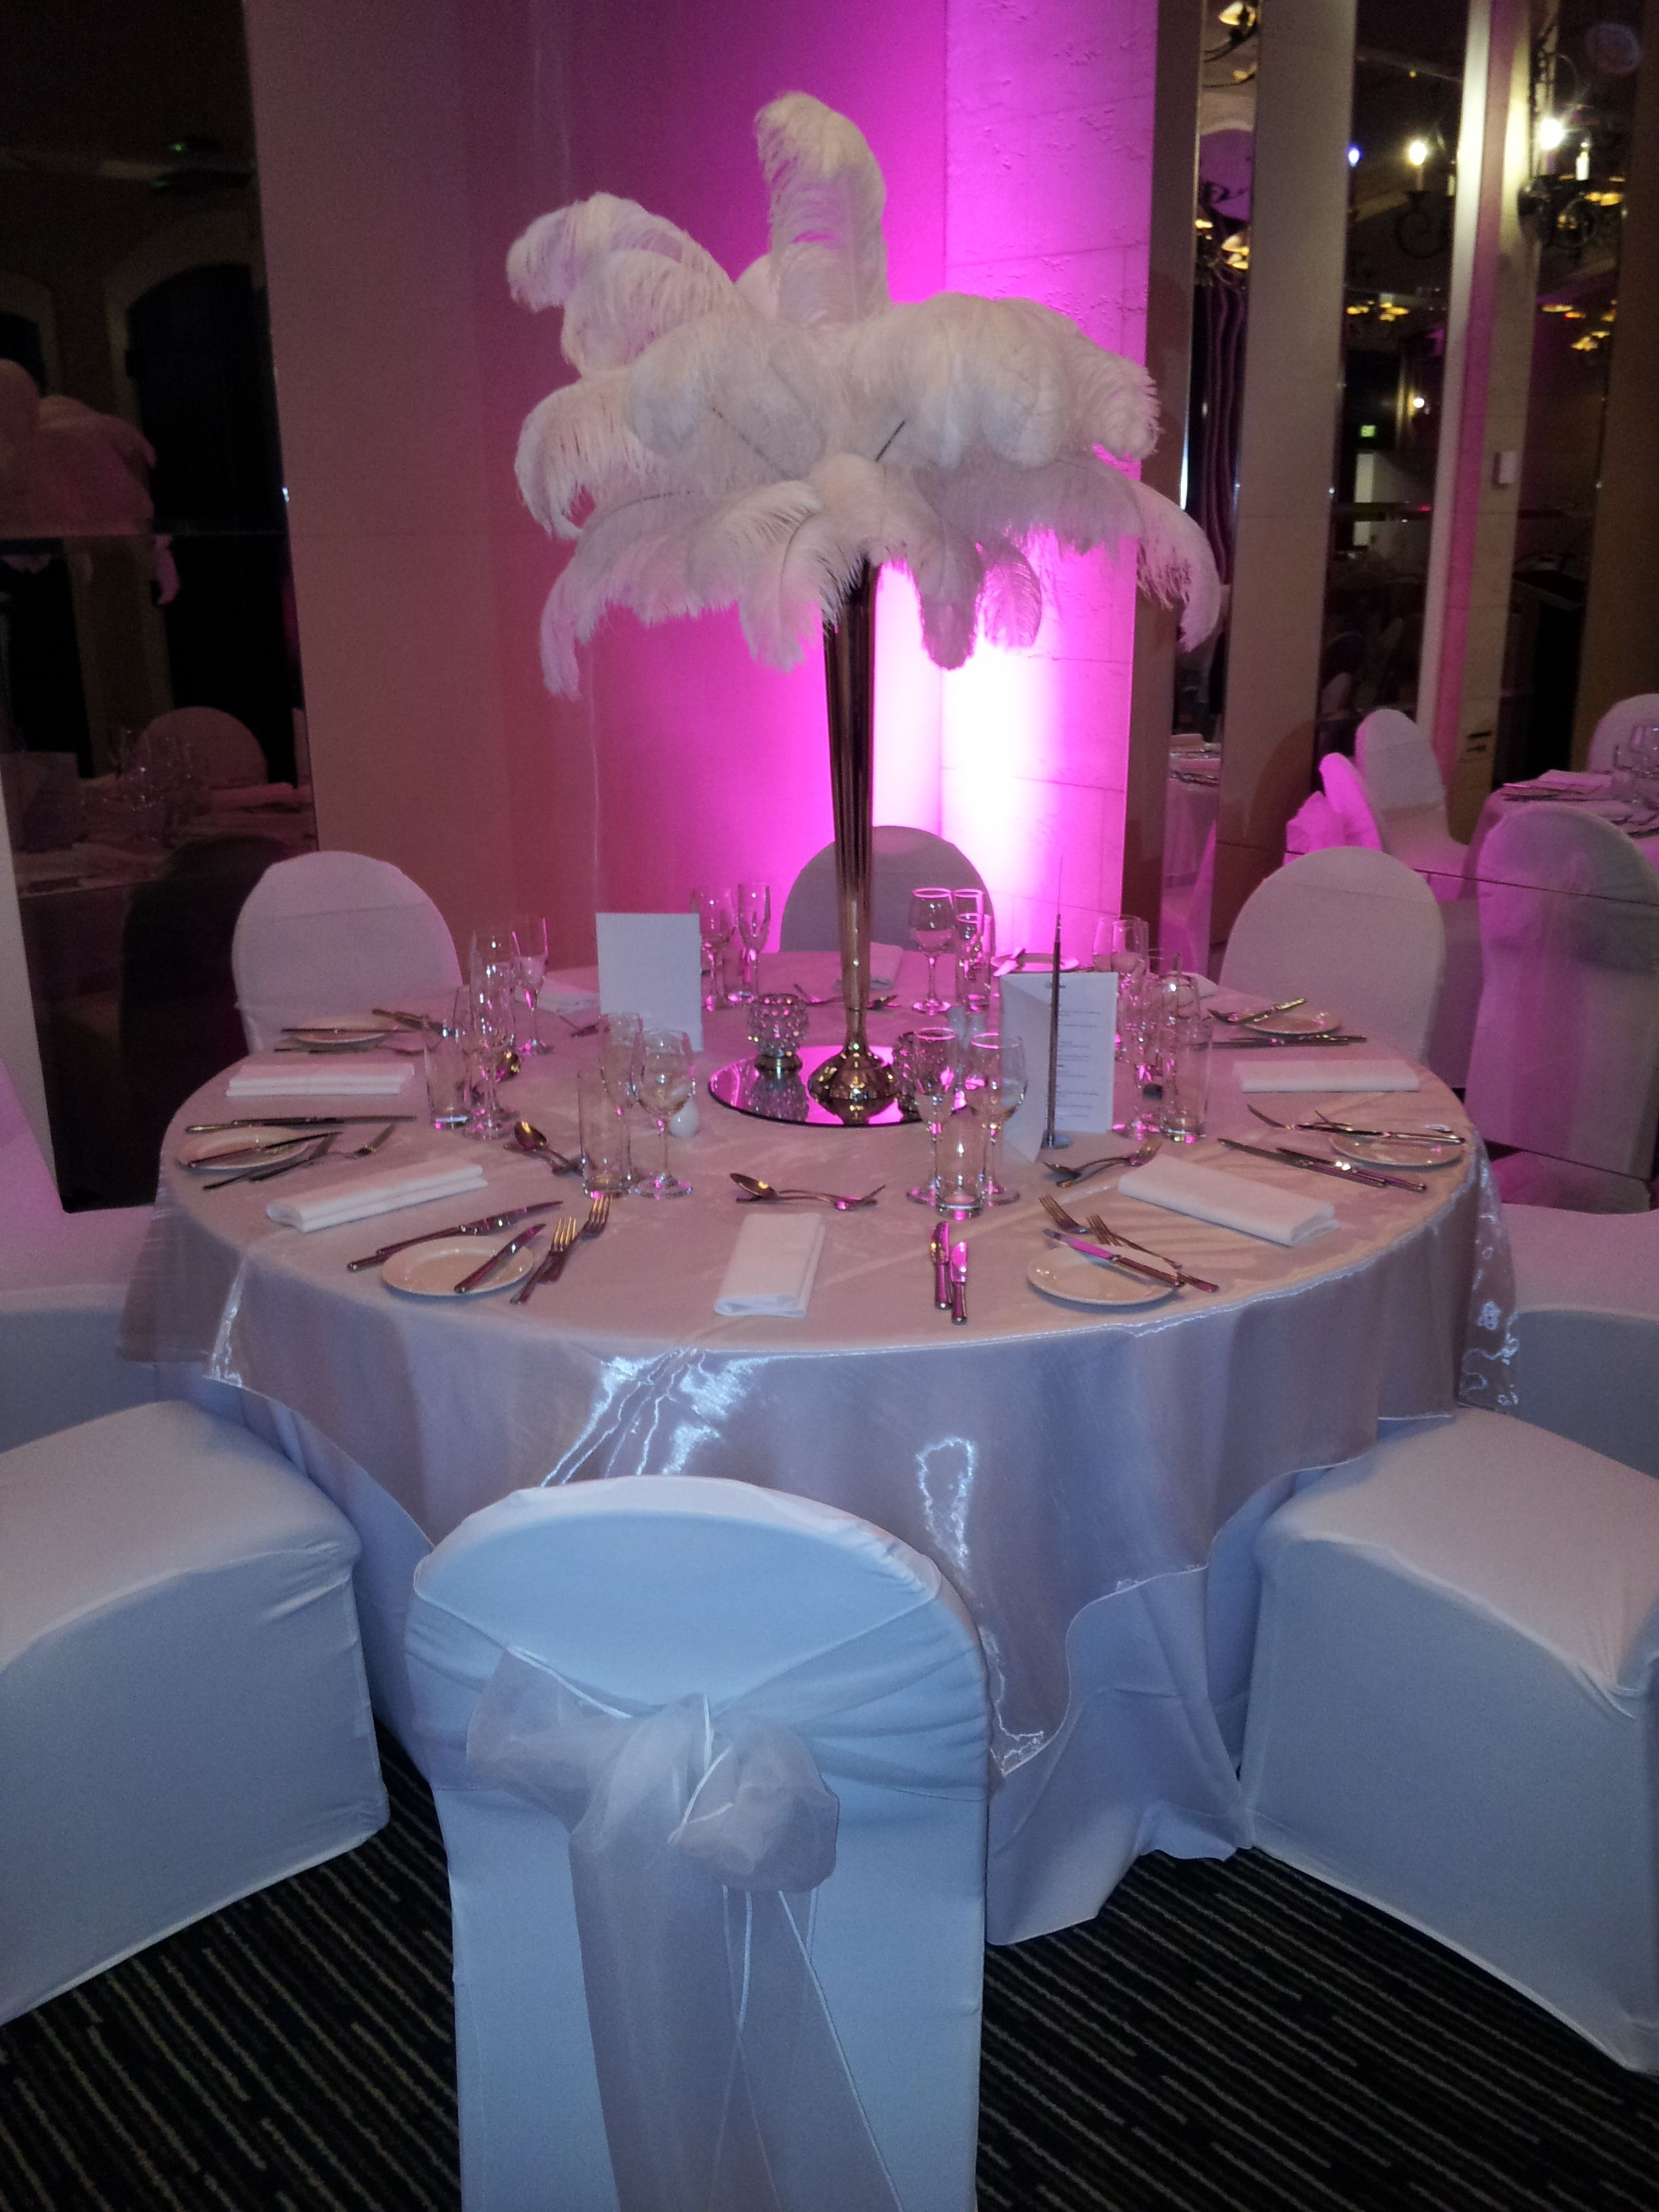 Inspired by the Great Gatsby! Wedding Centrepiece - Feather Centrepiece - Pink Uplights - Royce Hotel Melbourne Conference Venue - Melbourne Wedding Venue